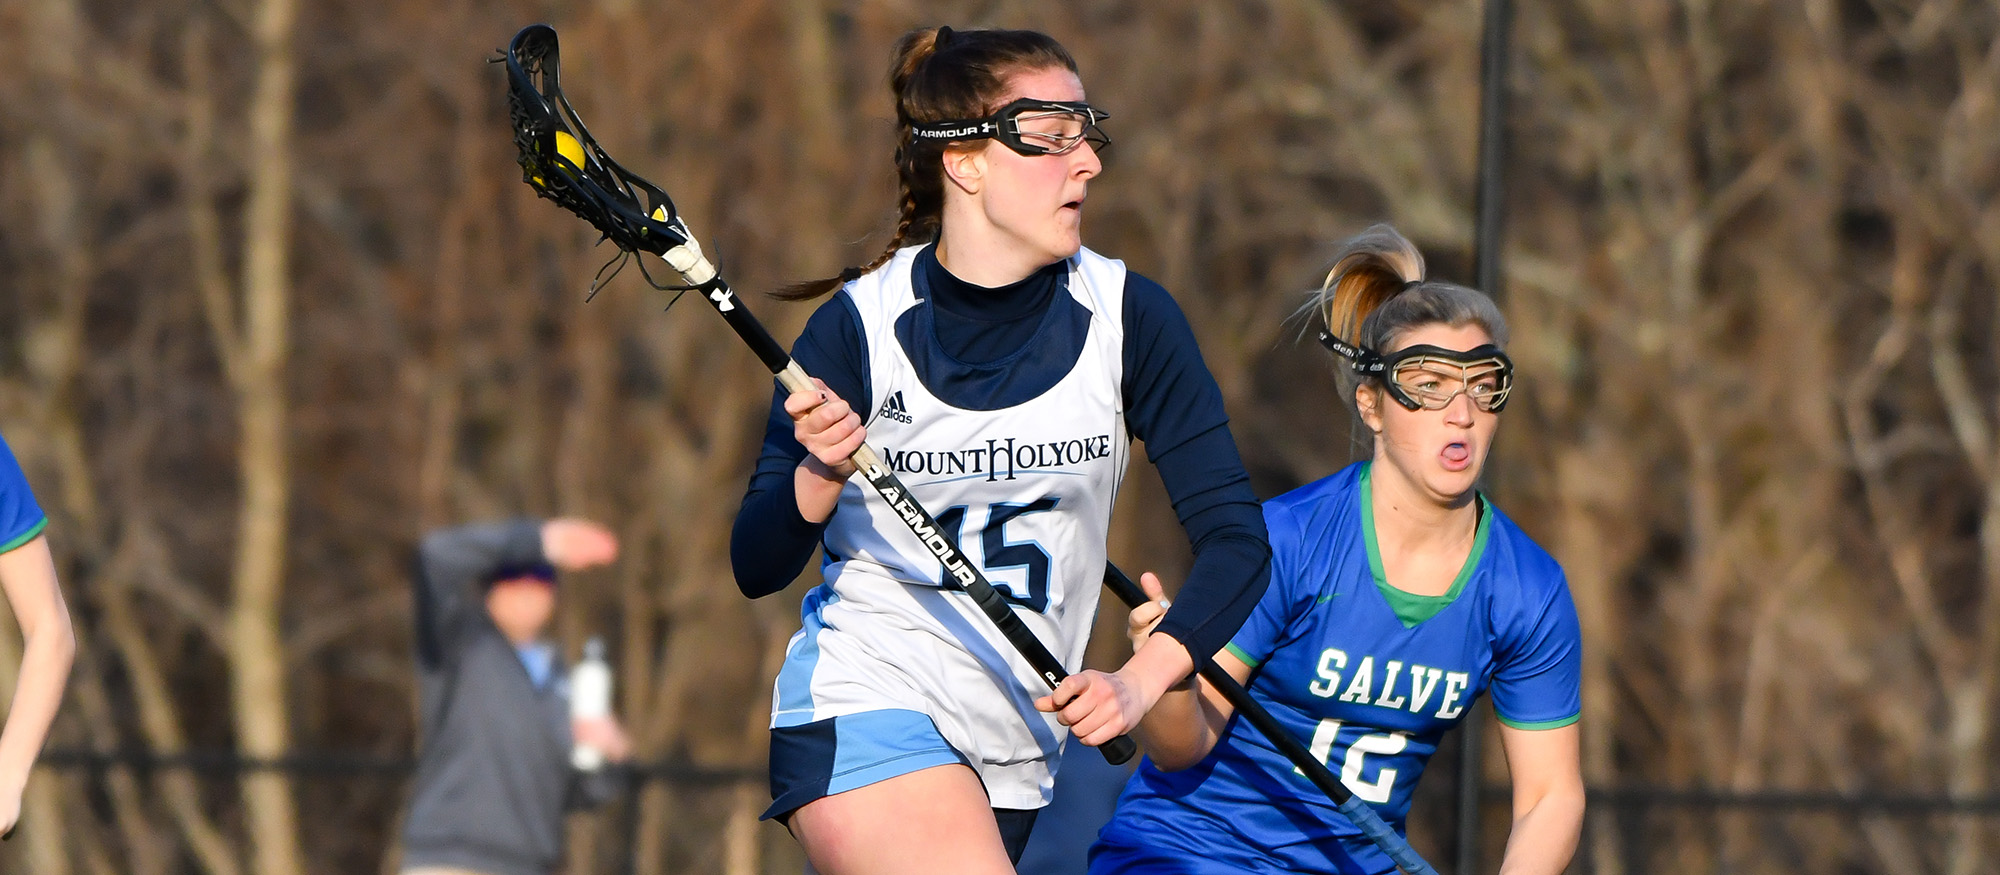 Action photo of Lyons lacrosse player, Abby Baldwin.